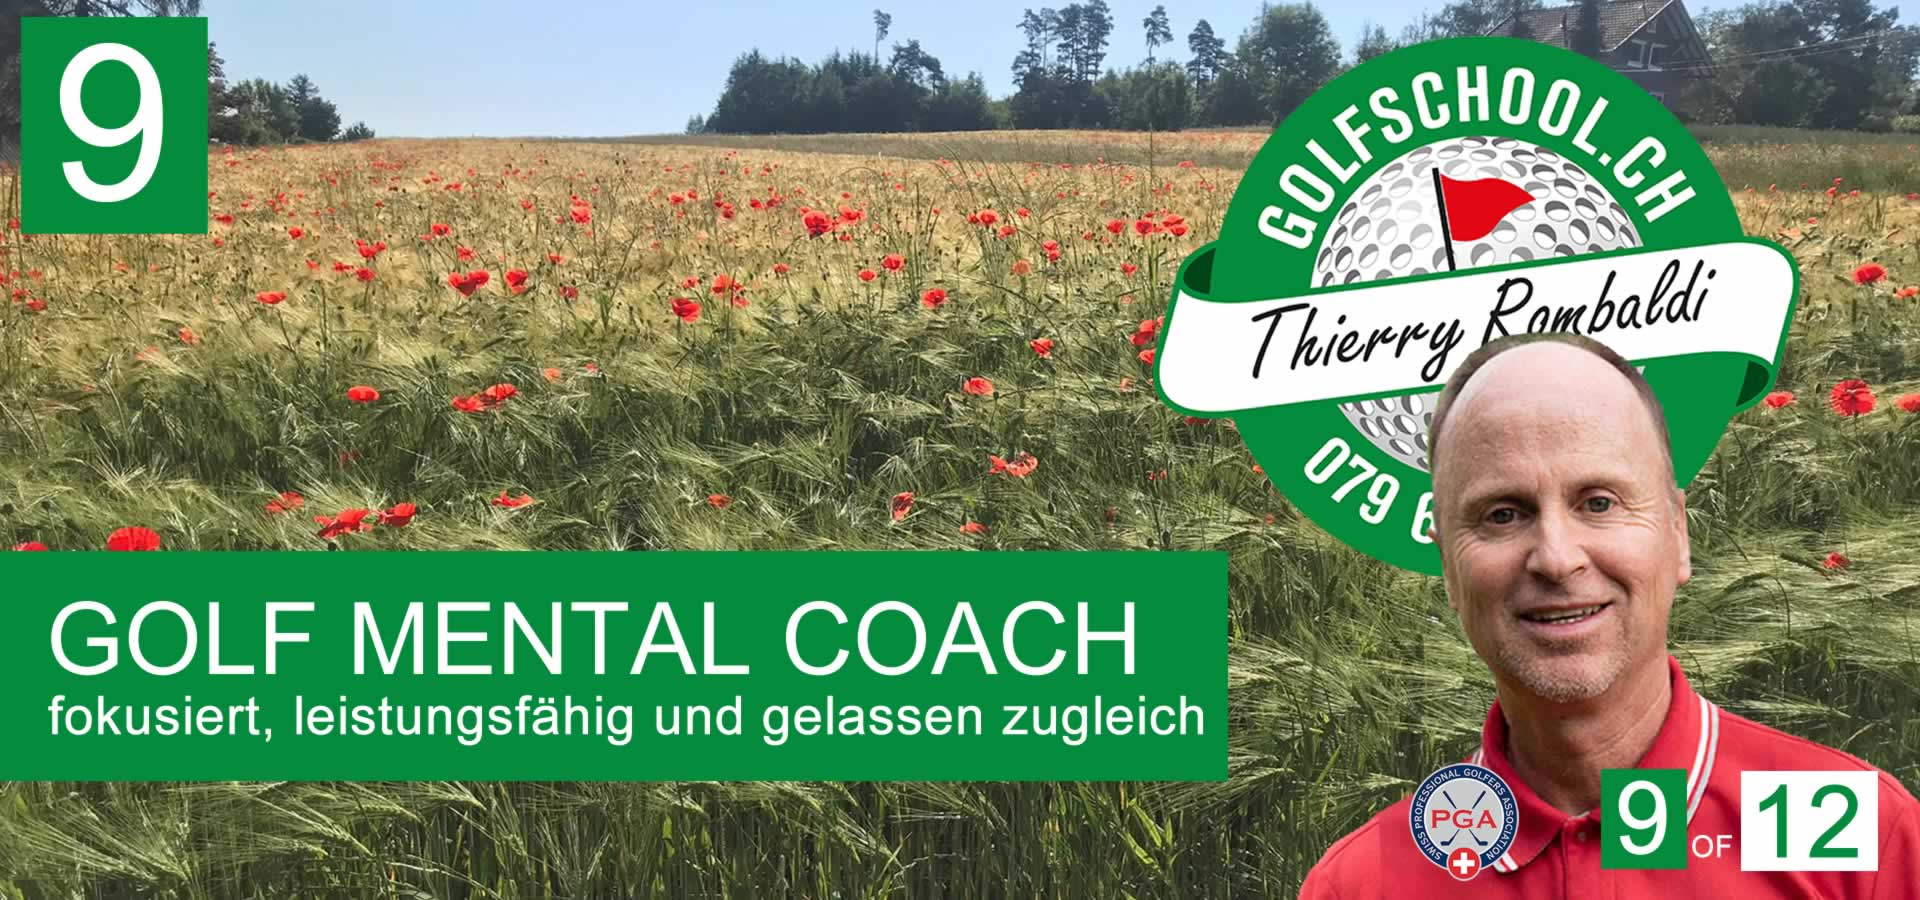 09-Golf-Mental-Coach-Golfpro-Zuerich-Golf-Psychologie-Golflehrer-Thierry-Rombaldi-Golfschool-Golfcoursemanagement